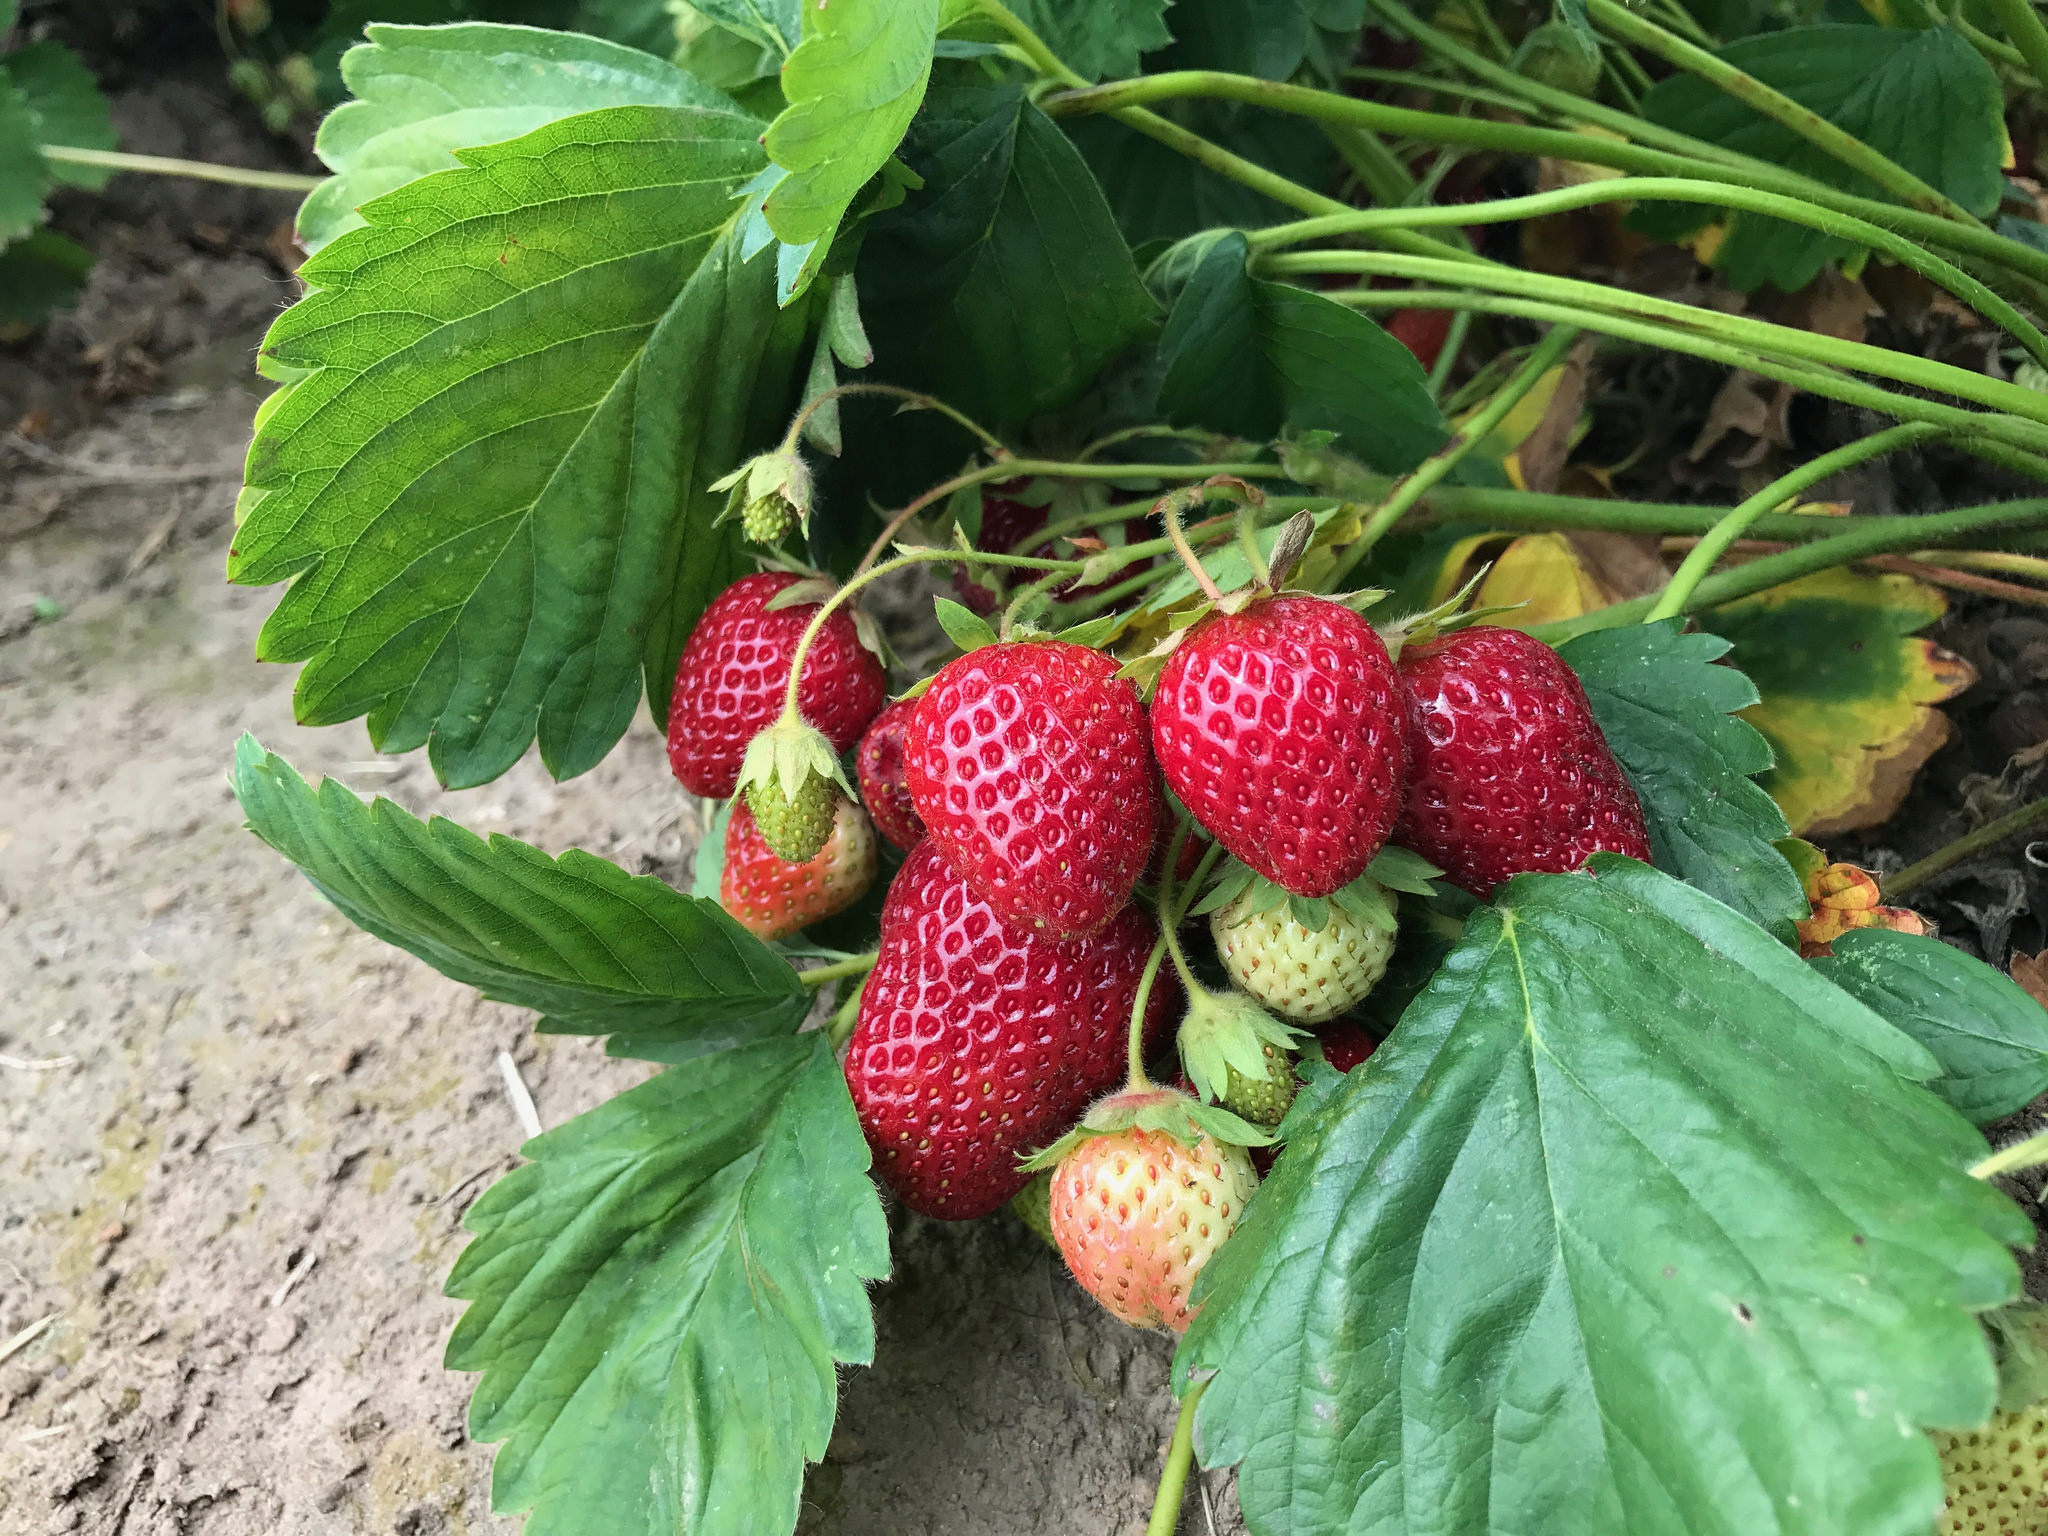 Grow your own strawberries for sweet satisfaction